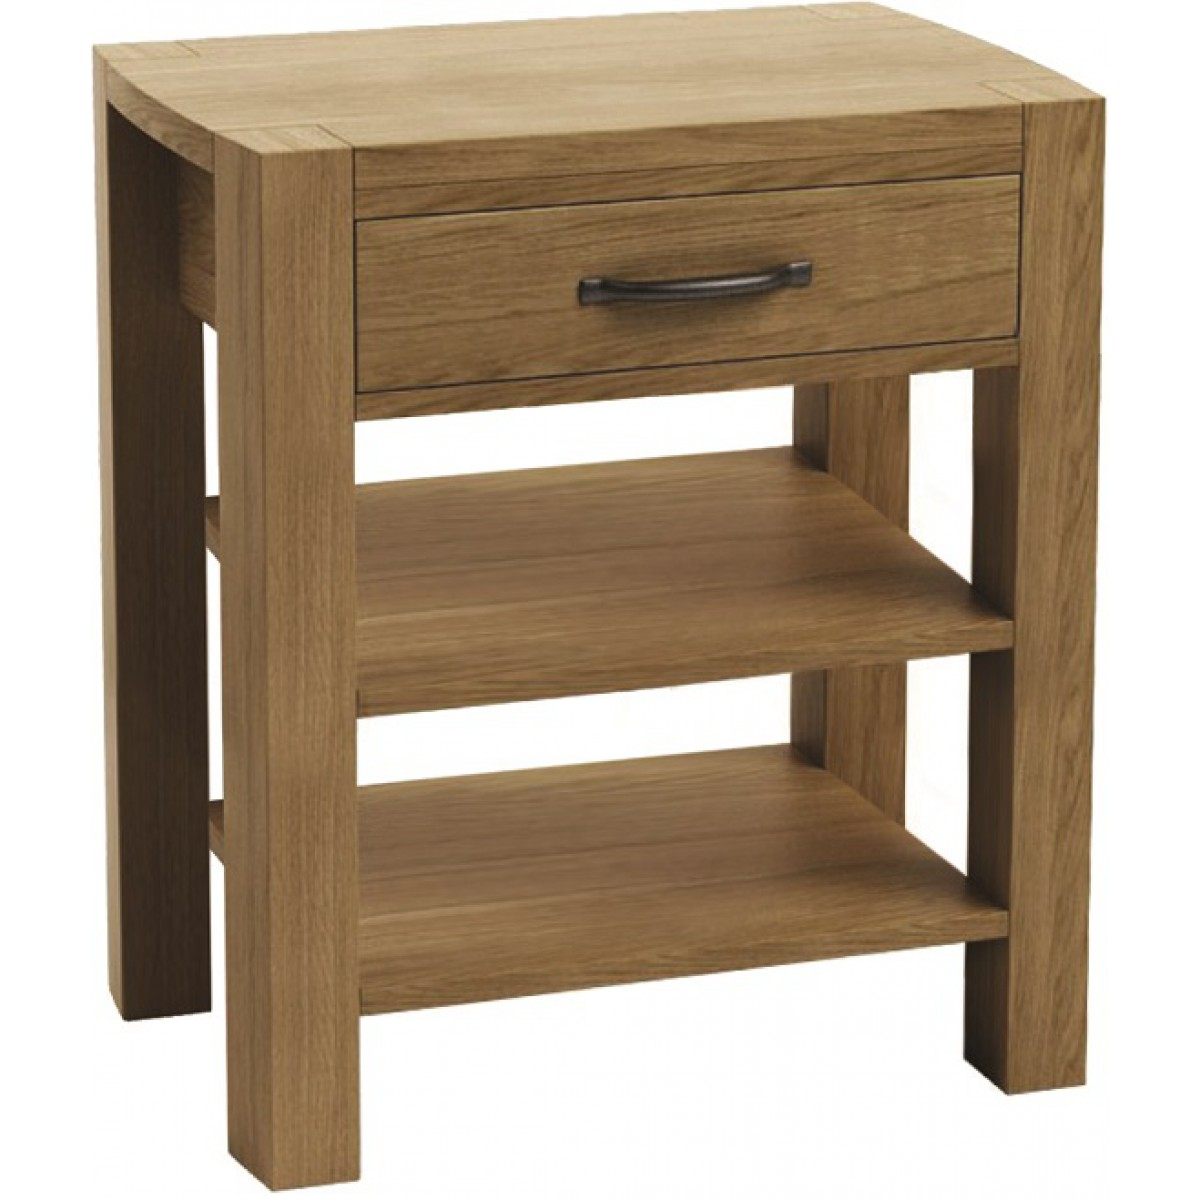 Goliath console - Goliath console table ...